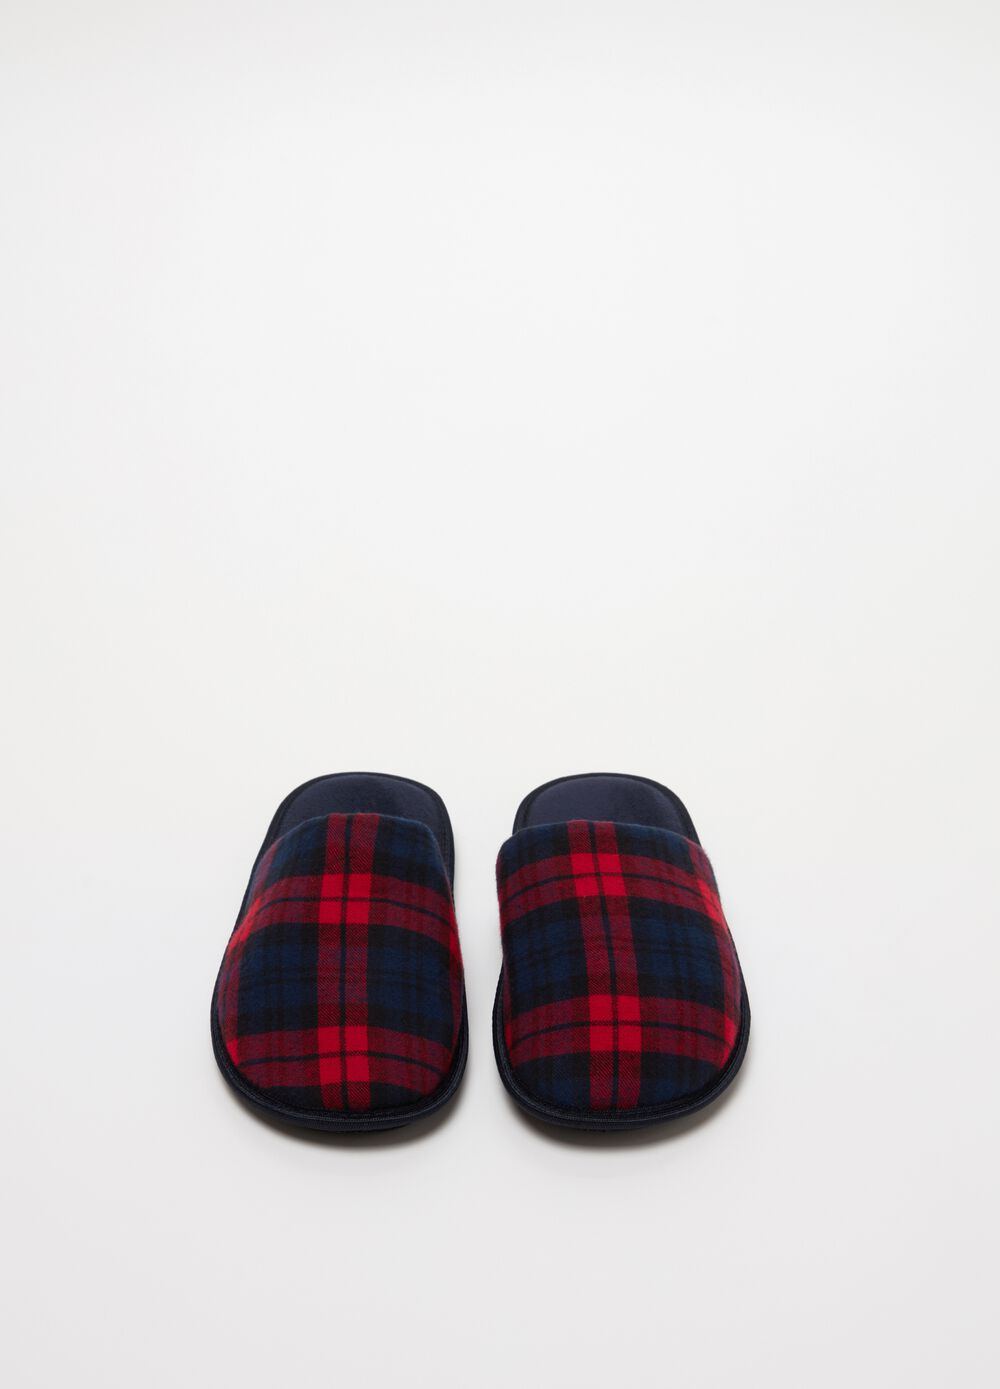 Fabric slippers with check pattern